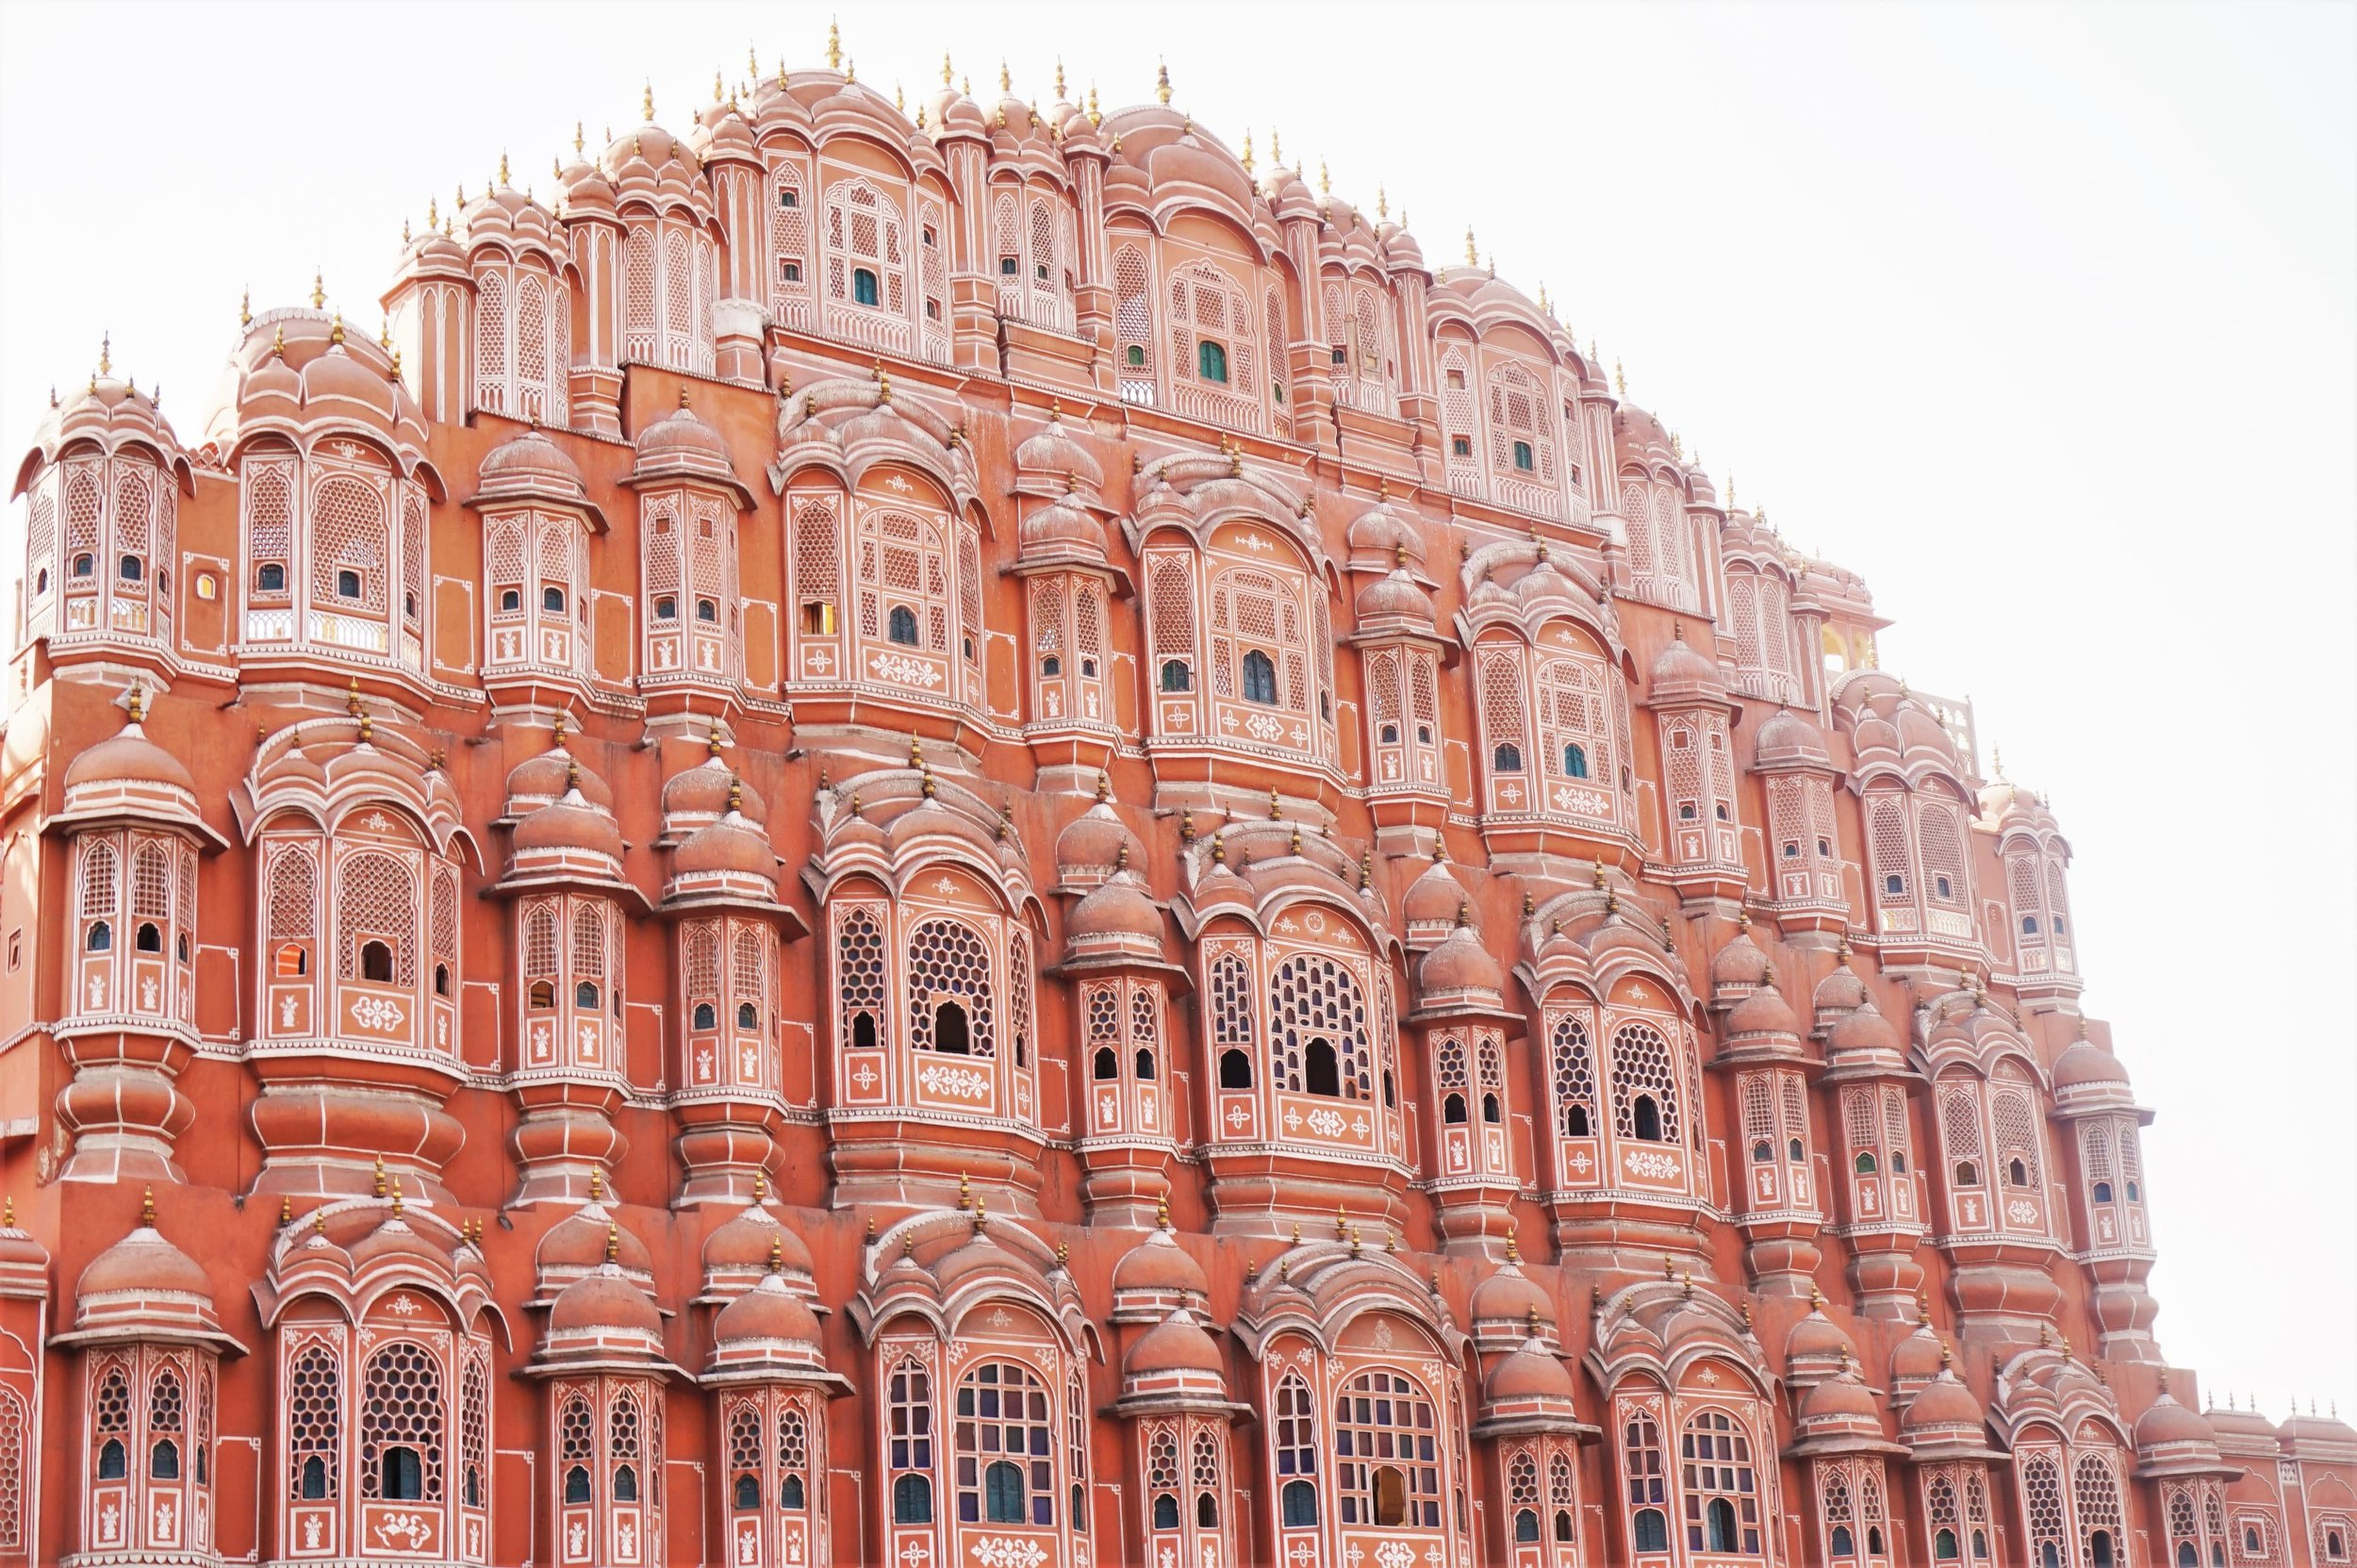 One of the most beautiful places to visit in Rajasthan.